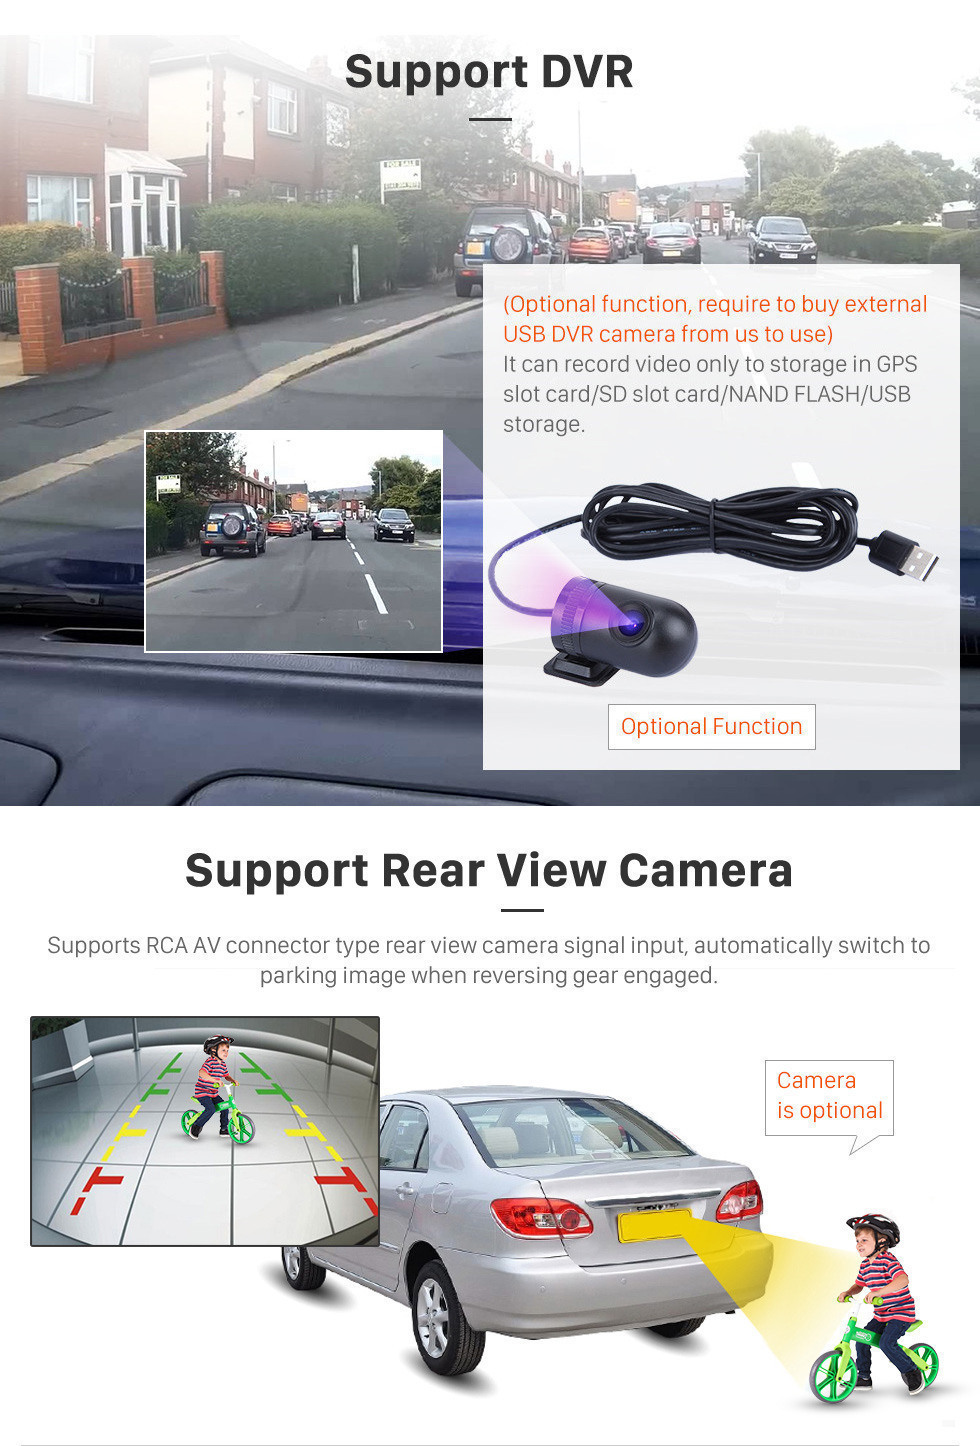 Seicane 2005 2006 2007 2008 2009 2010 Nissan TIIDA Android 10.0 9 Inch HD Touchscreen Multimedia Player GPS Navigation Support Rear View Camera Blueooth Car Stereo Aux USB DAB+